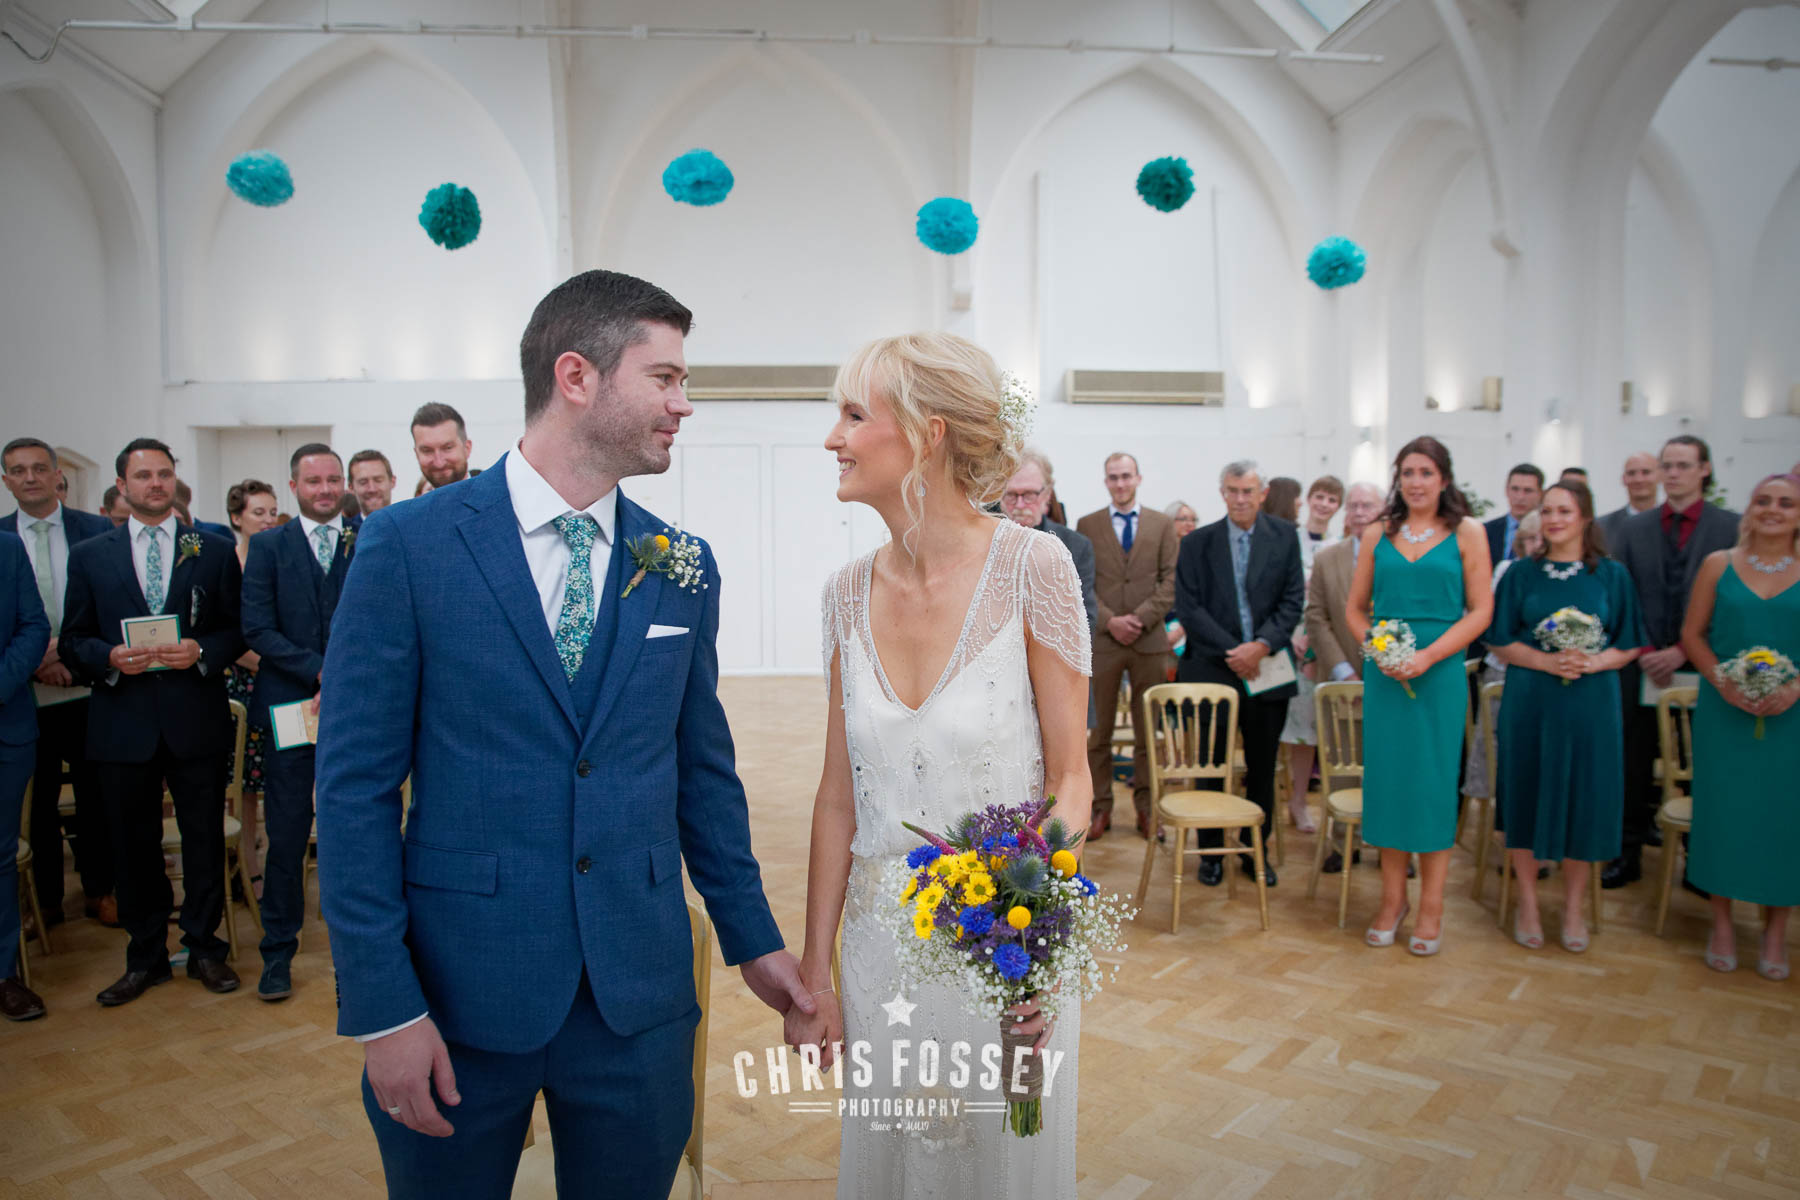 Wedding Photography The Old Library Digbeth Birmingham B9 4AT